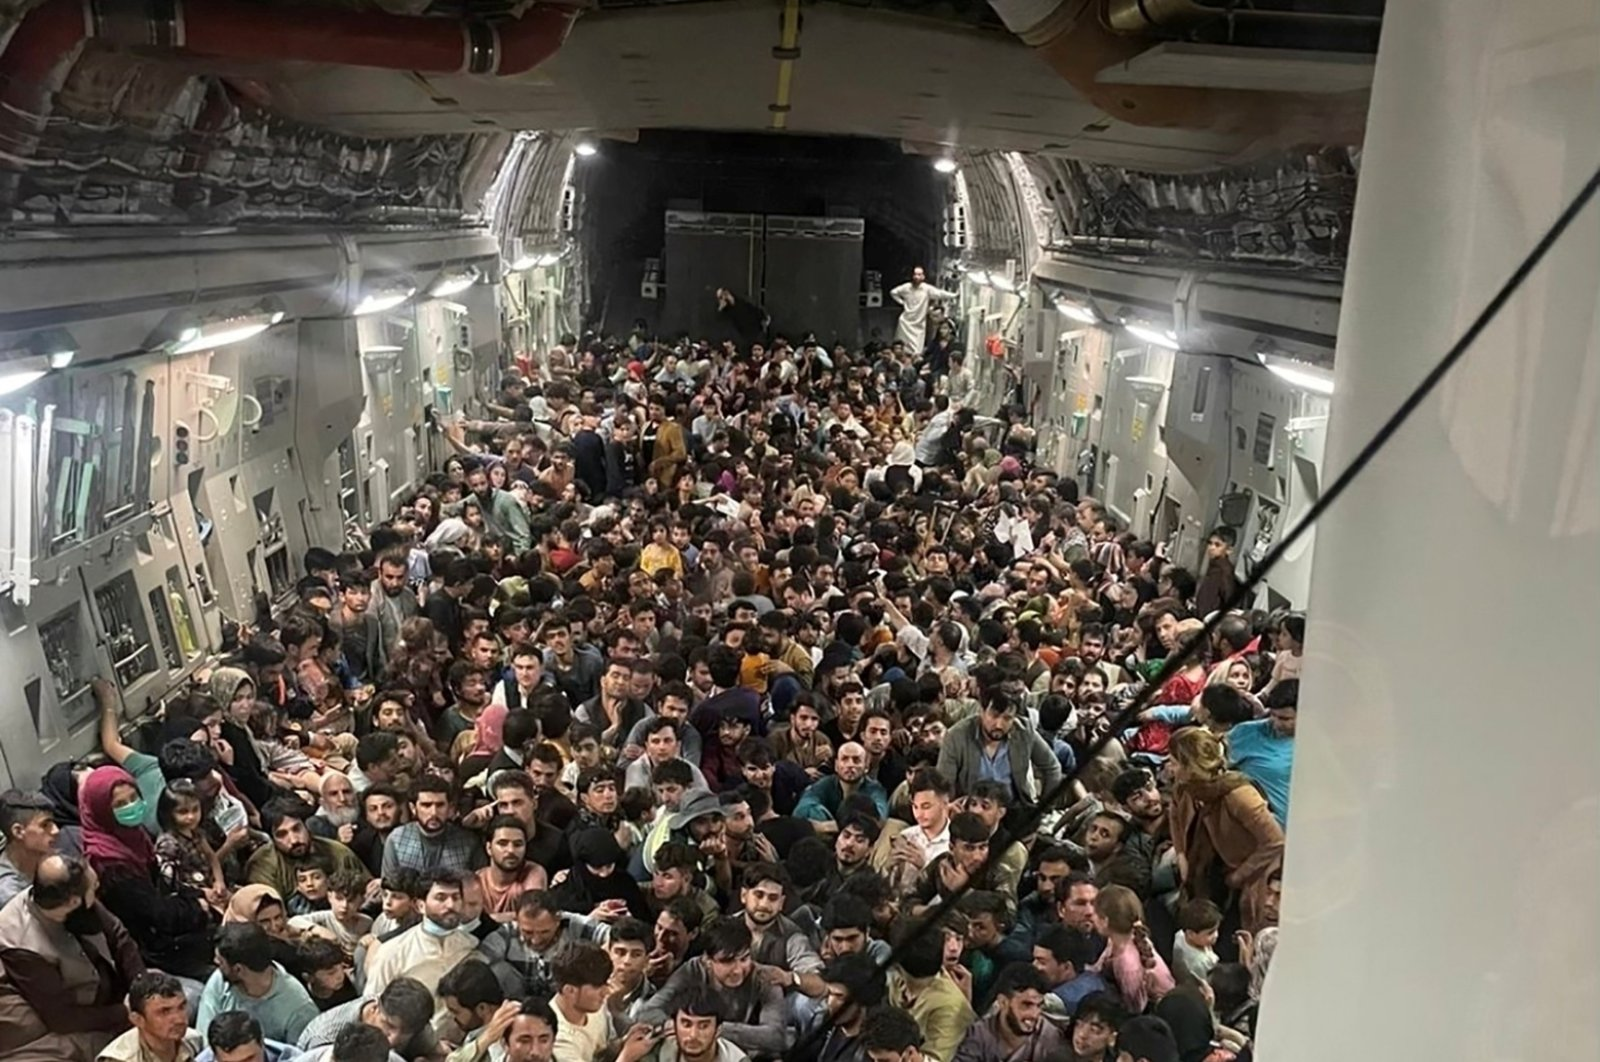 Evacuees crowd the interior of a U.S. Air Force C-17 Globemaster III transport aircraft, now known to have been carrying 823 Afghans to Qatar from Kabul, Afghanistan, Aug. 15, 2021.(U.S. Air Force/Handout via Reuters)